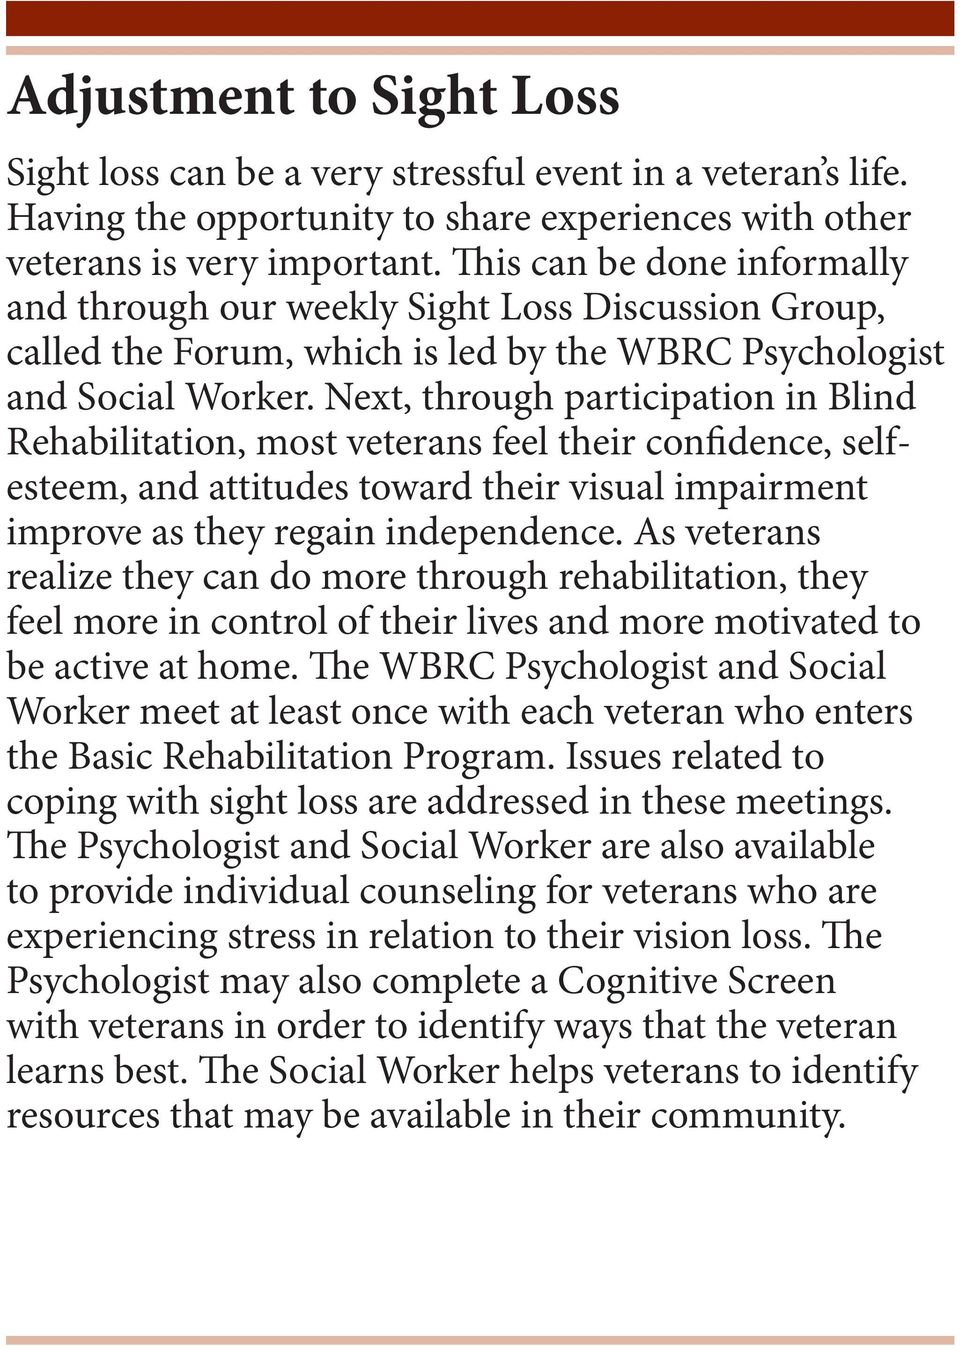 Next, through participation in Blind Rehabilitation, most veterans feel their confidence, selfesteem, and attitudes toward their visual impairment improve as they regain independence.